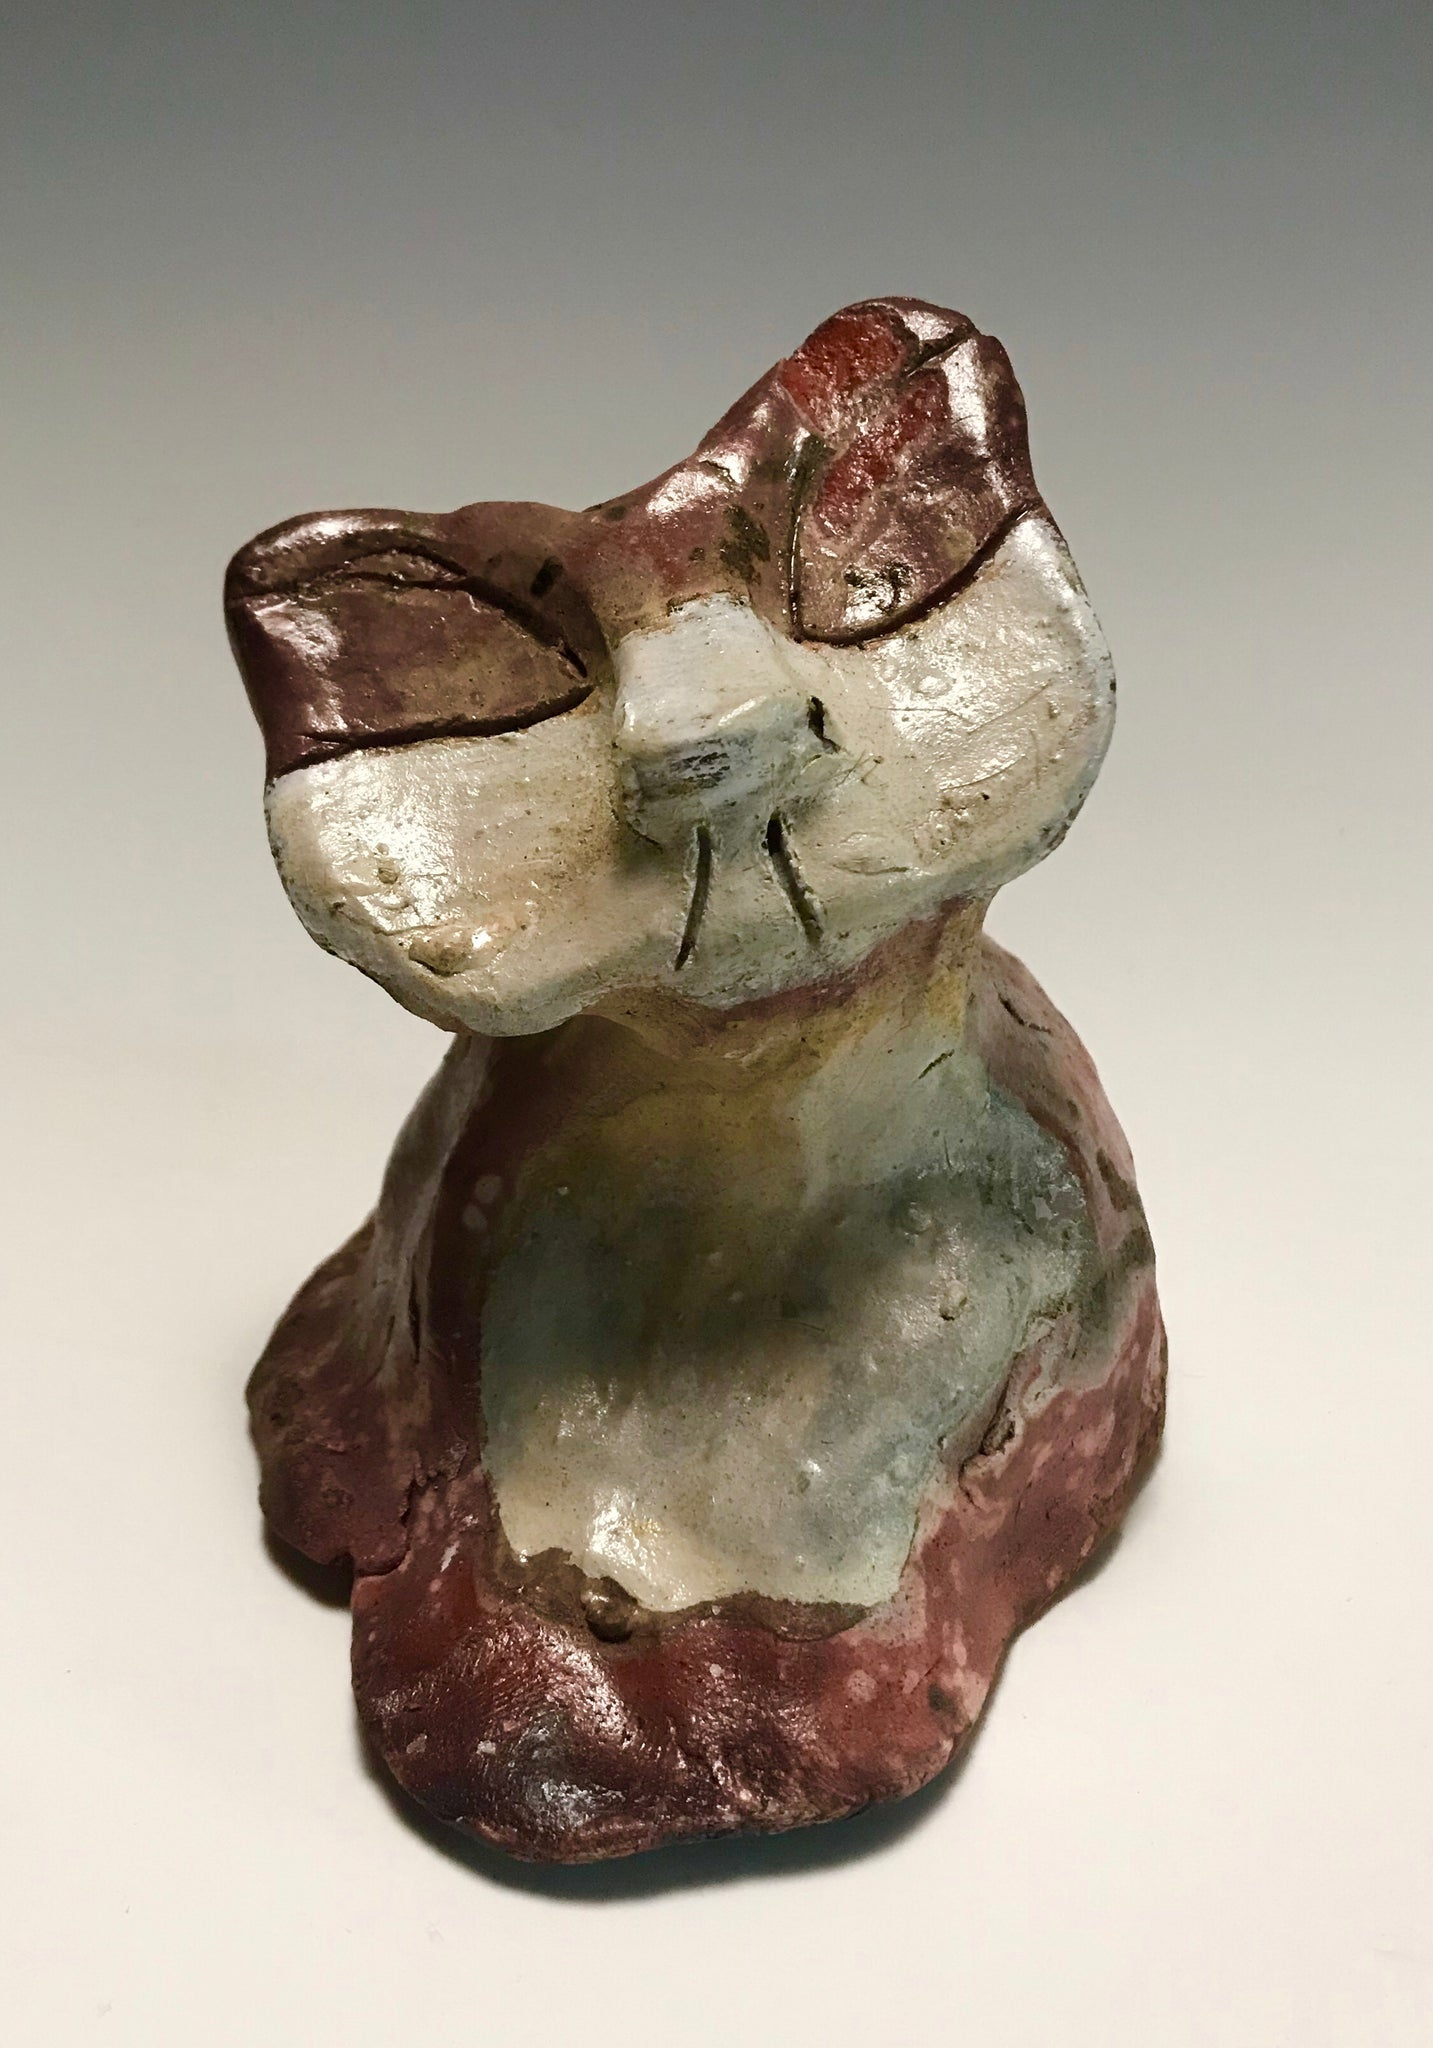 "This little kitty stands 4"" x 4"" x 4"" and weighs 9 ozs. He has an off white and Colorful metallic  pinkish body. This little kitty will sit anywhere without getting into trouble! This Little Kitty could be an excellent gift and stocking stuffier."